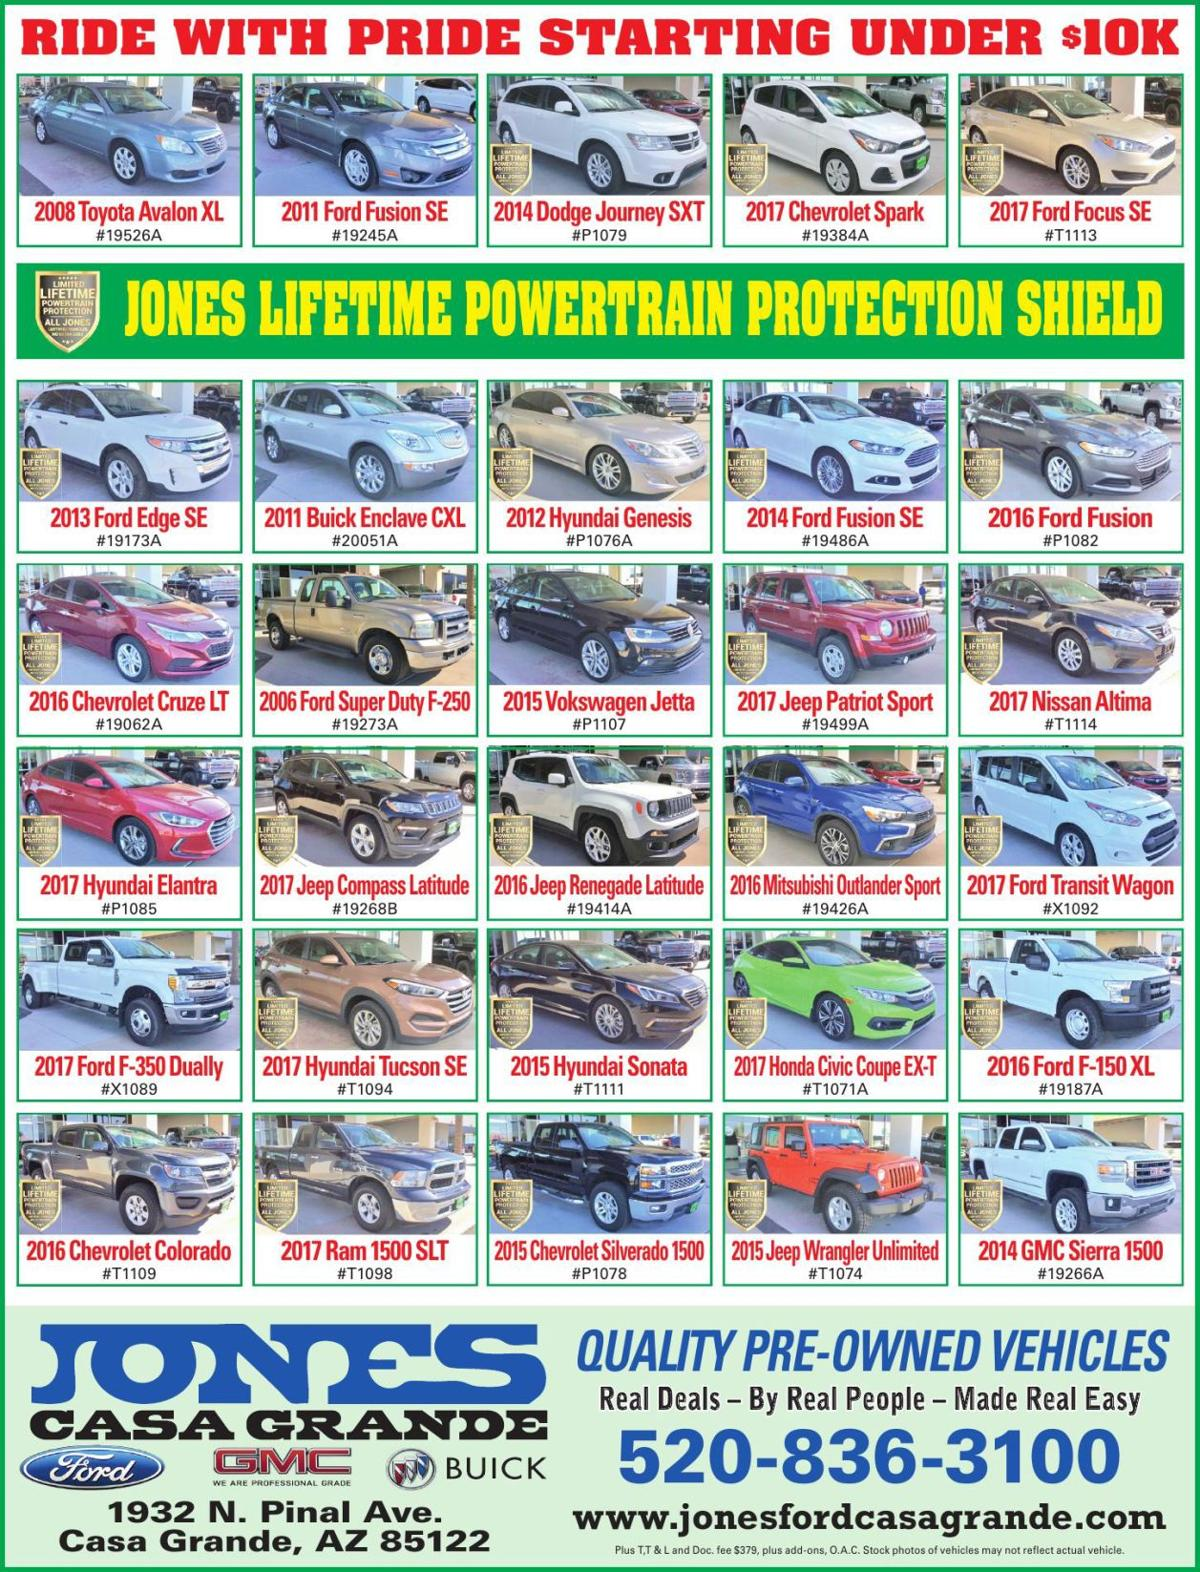 Jones Ford Buick GMC